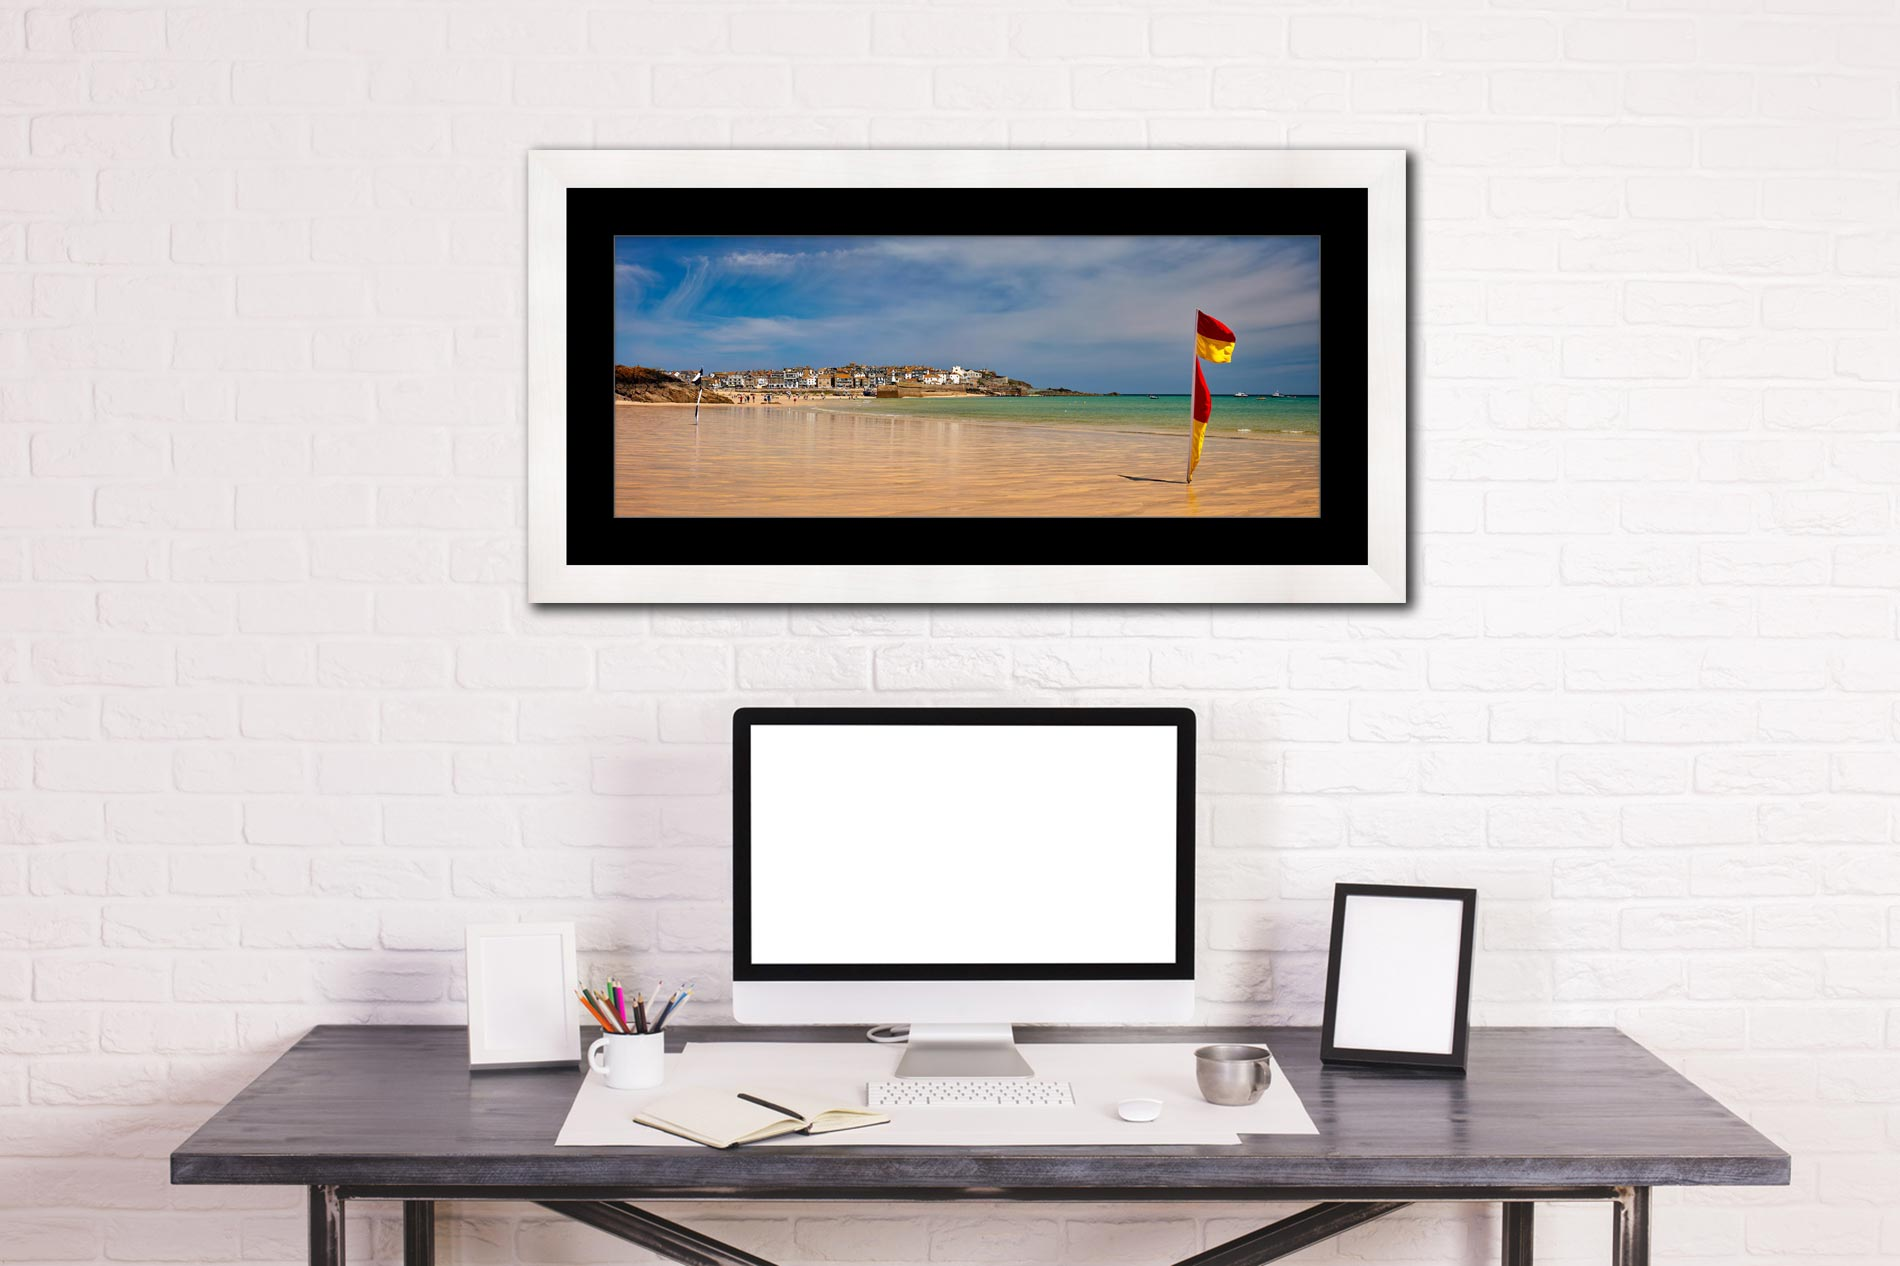 Porthminster Beach St Ives - Framed Print with Mount on Wall